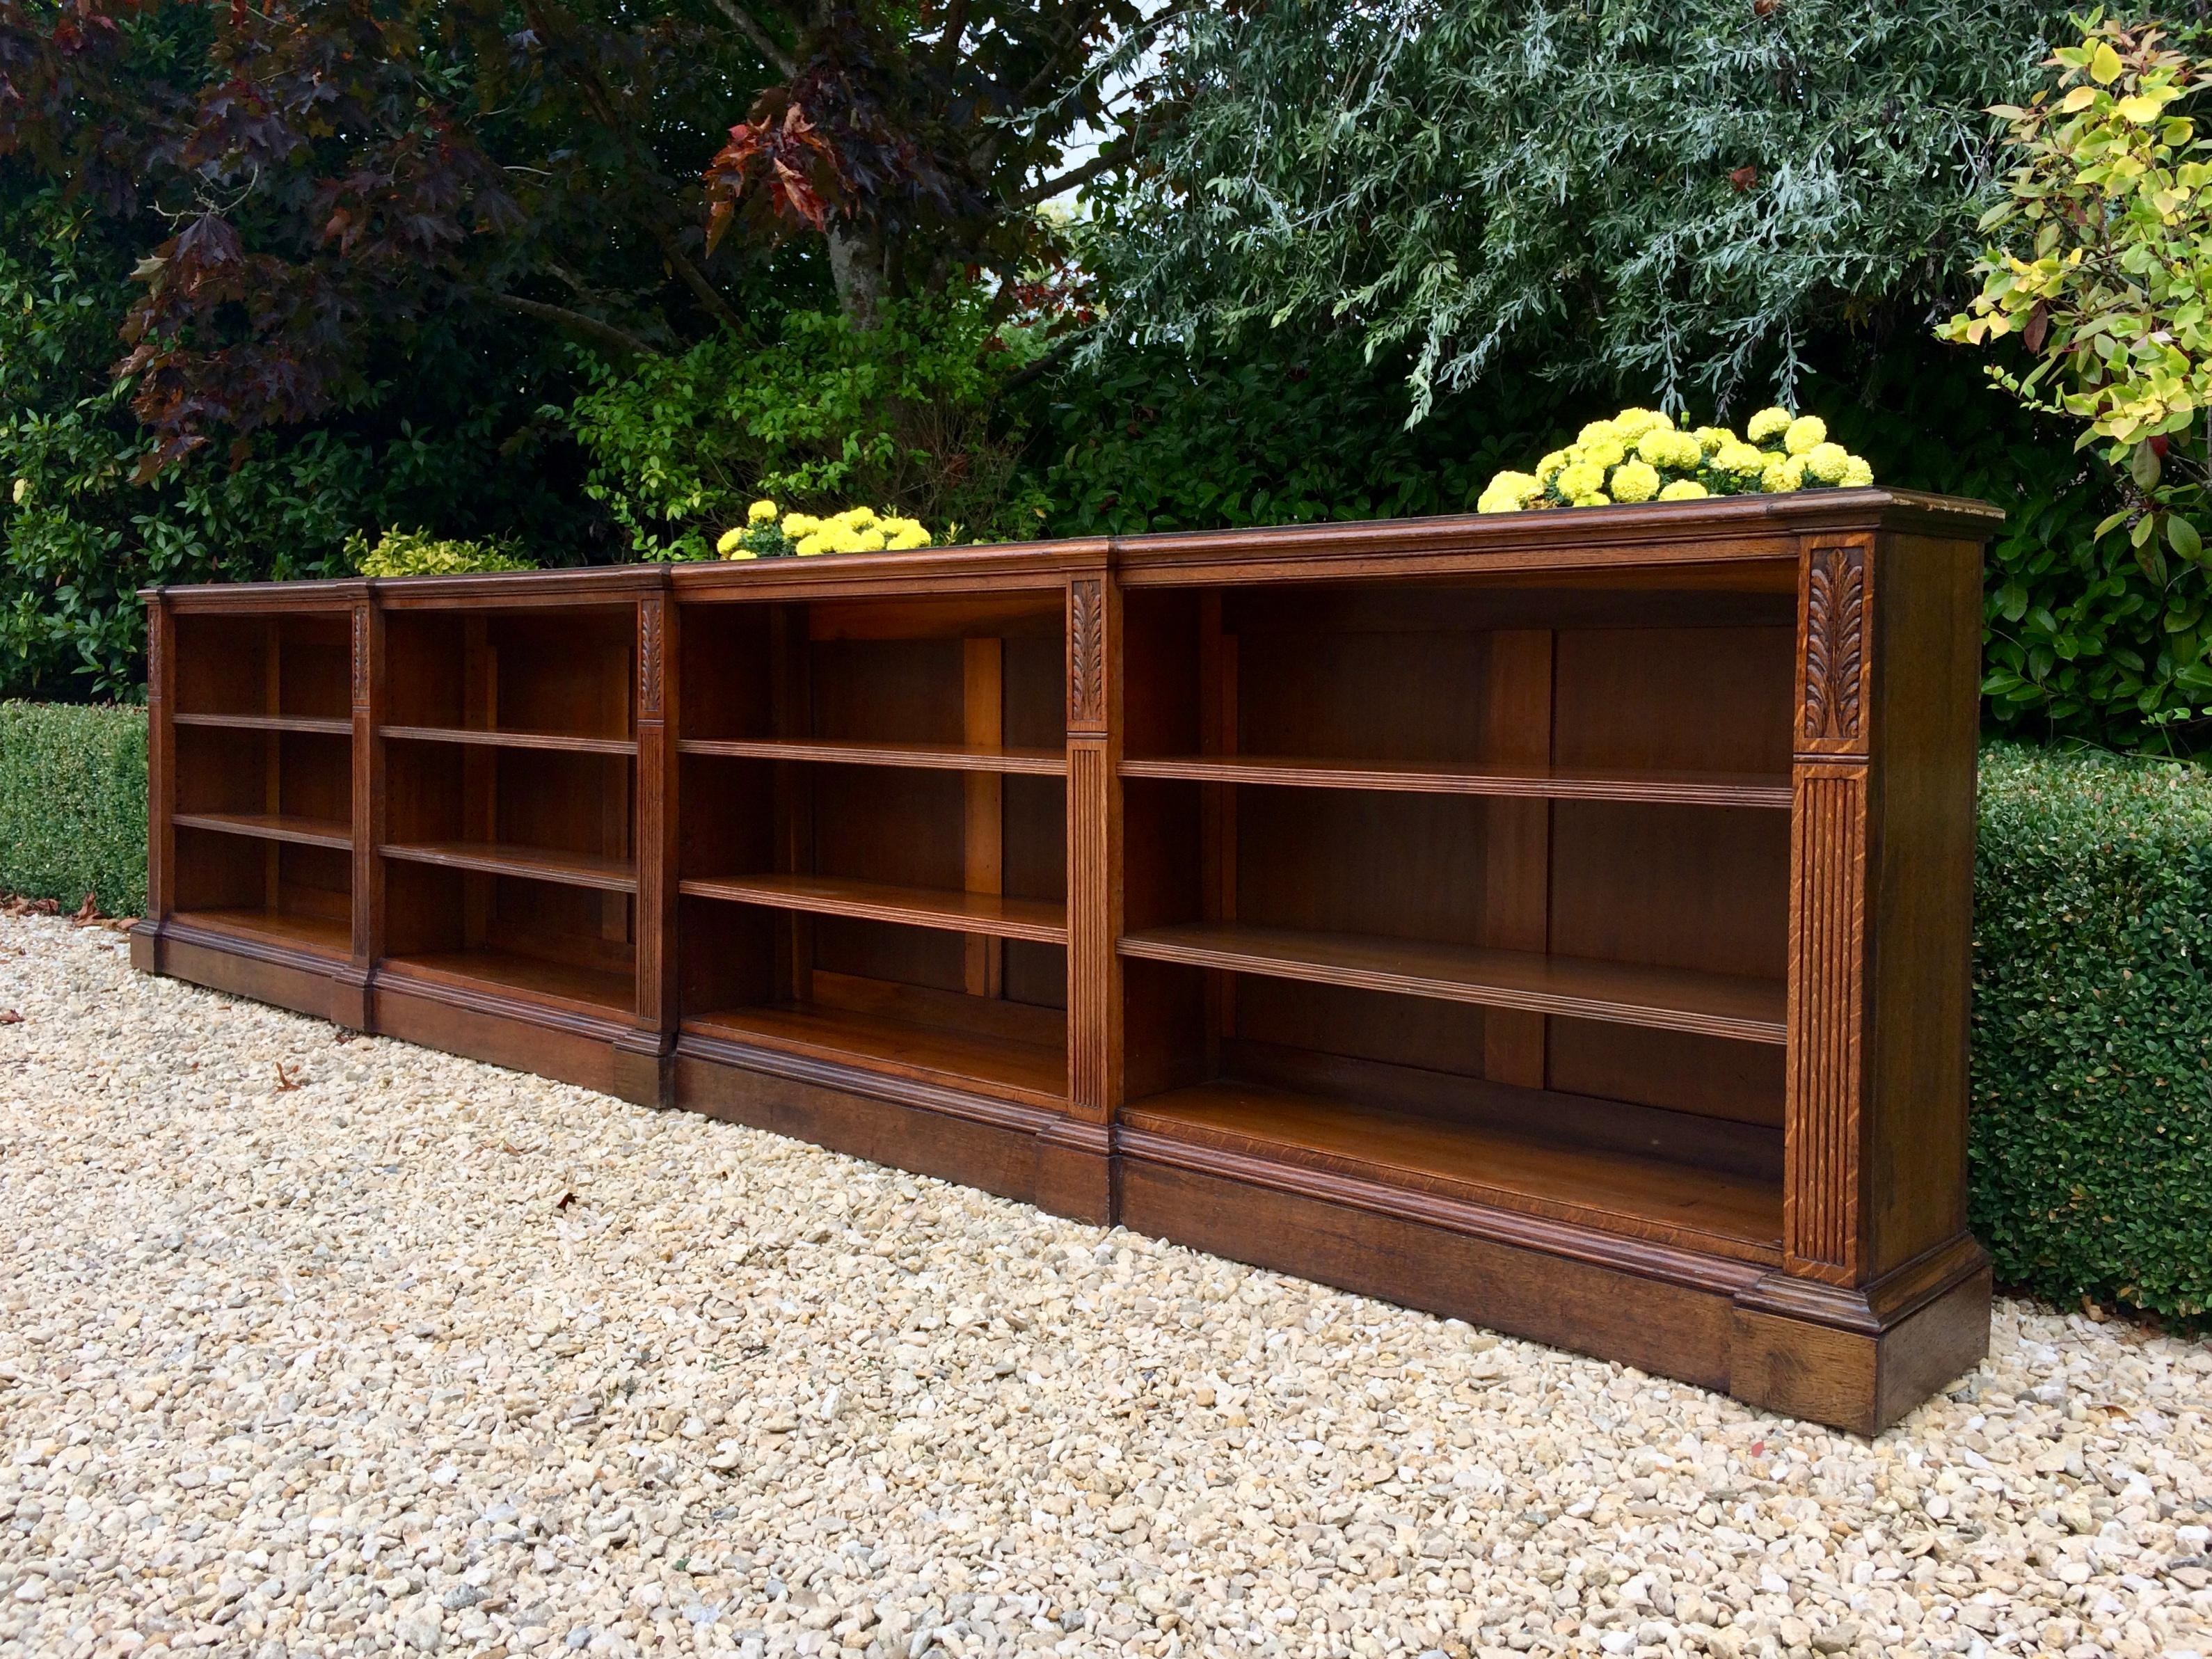 Stunning 19th Century Large Oak Bookcase Two Sections Carved Adjustable  Shelves